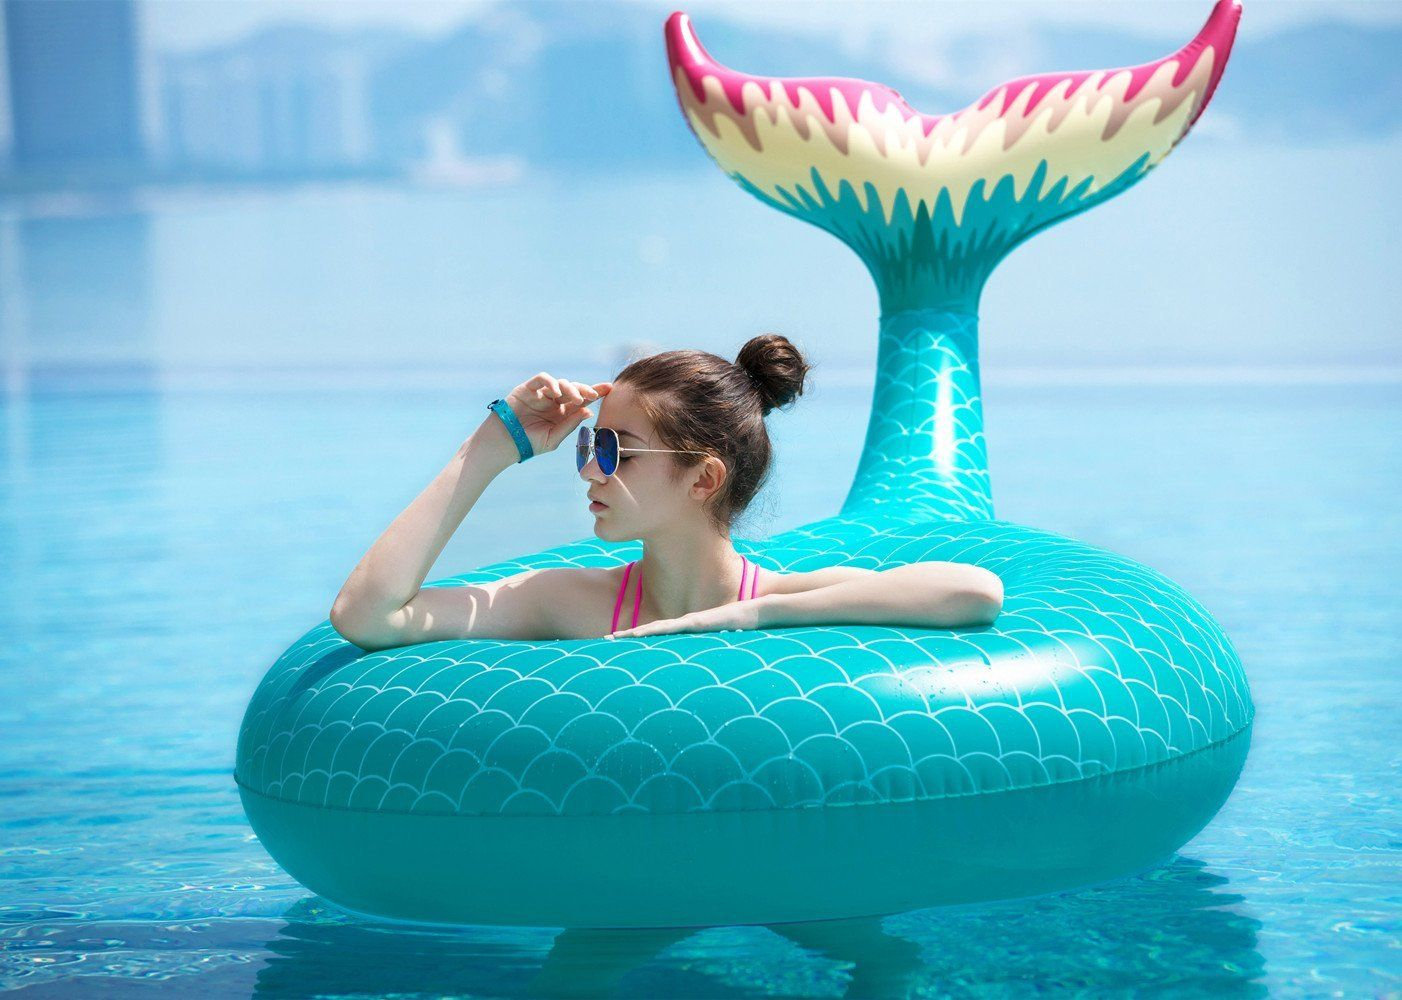 Giant Inflatable Mermaid Tail Pool Float For Adults Or Big Kids Mermaid Pool Watertub Inflatablyfun Mermaid Pool Party Swimming Pool Pool Floaties